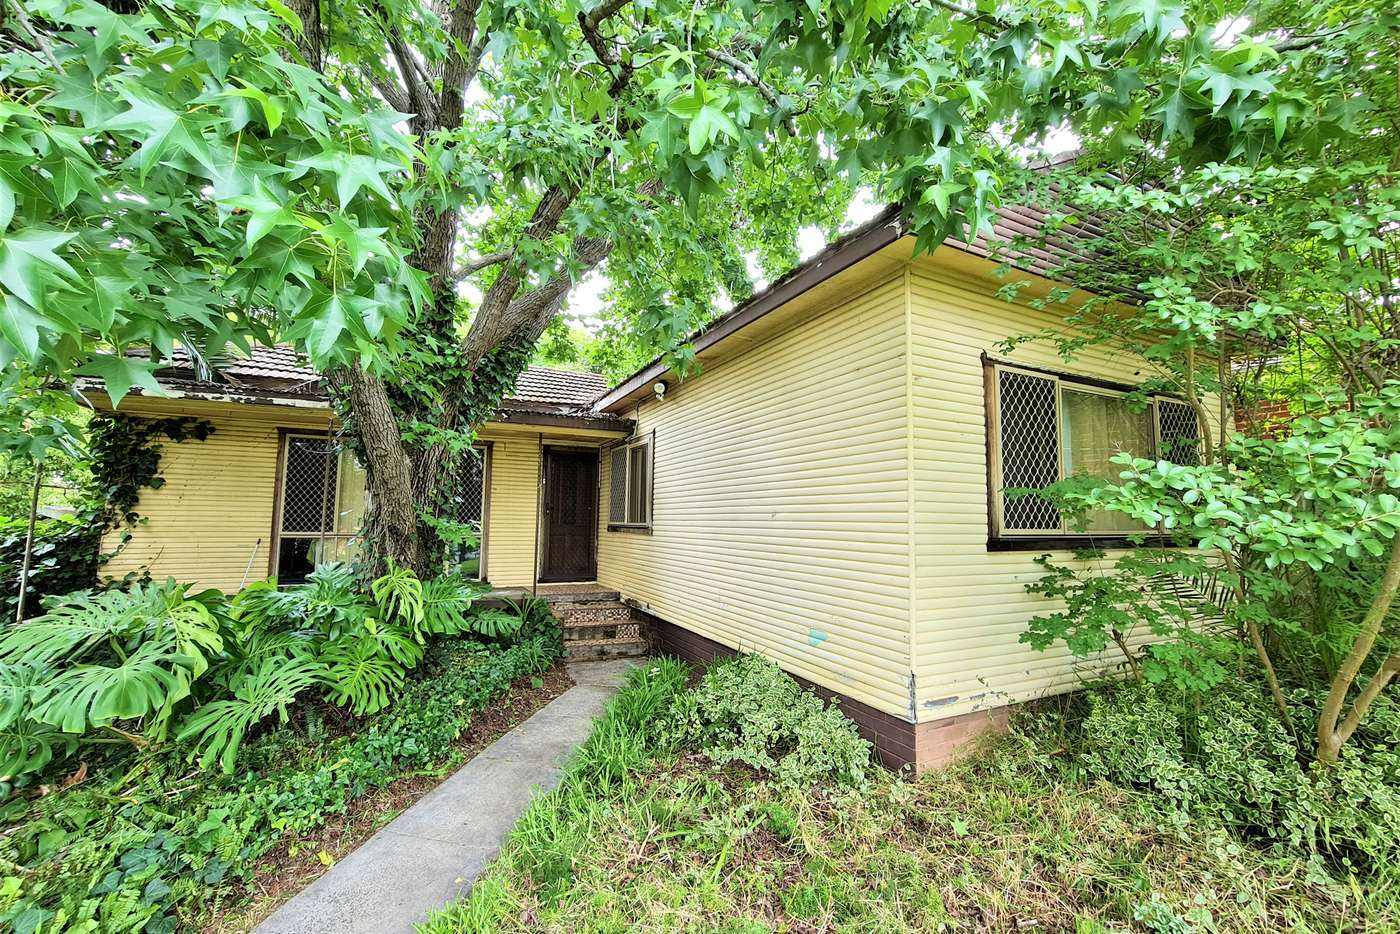 Main view of Homely house listing, 50 Watkins Road, Baulkham Hills NSW 2153